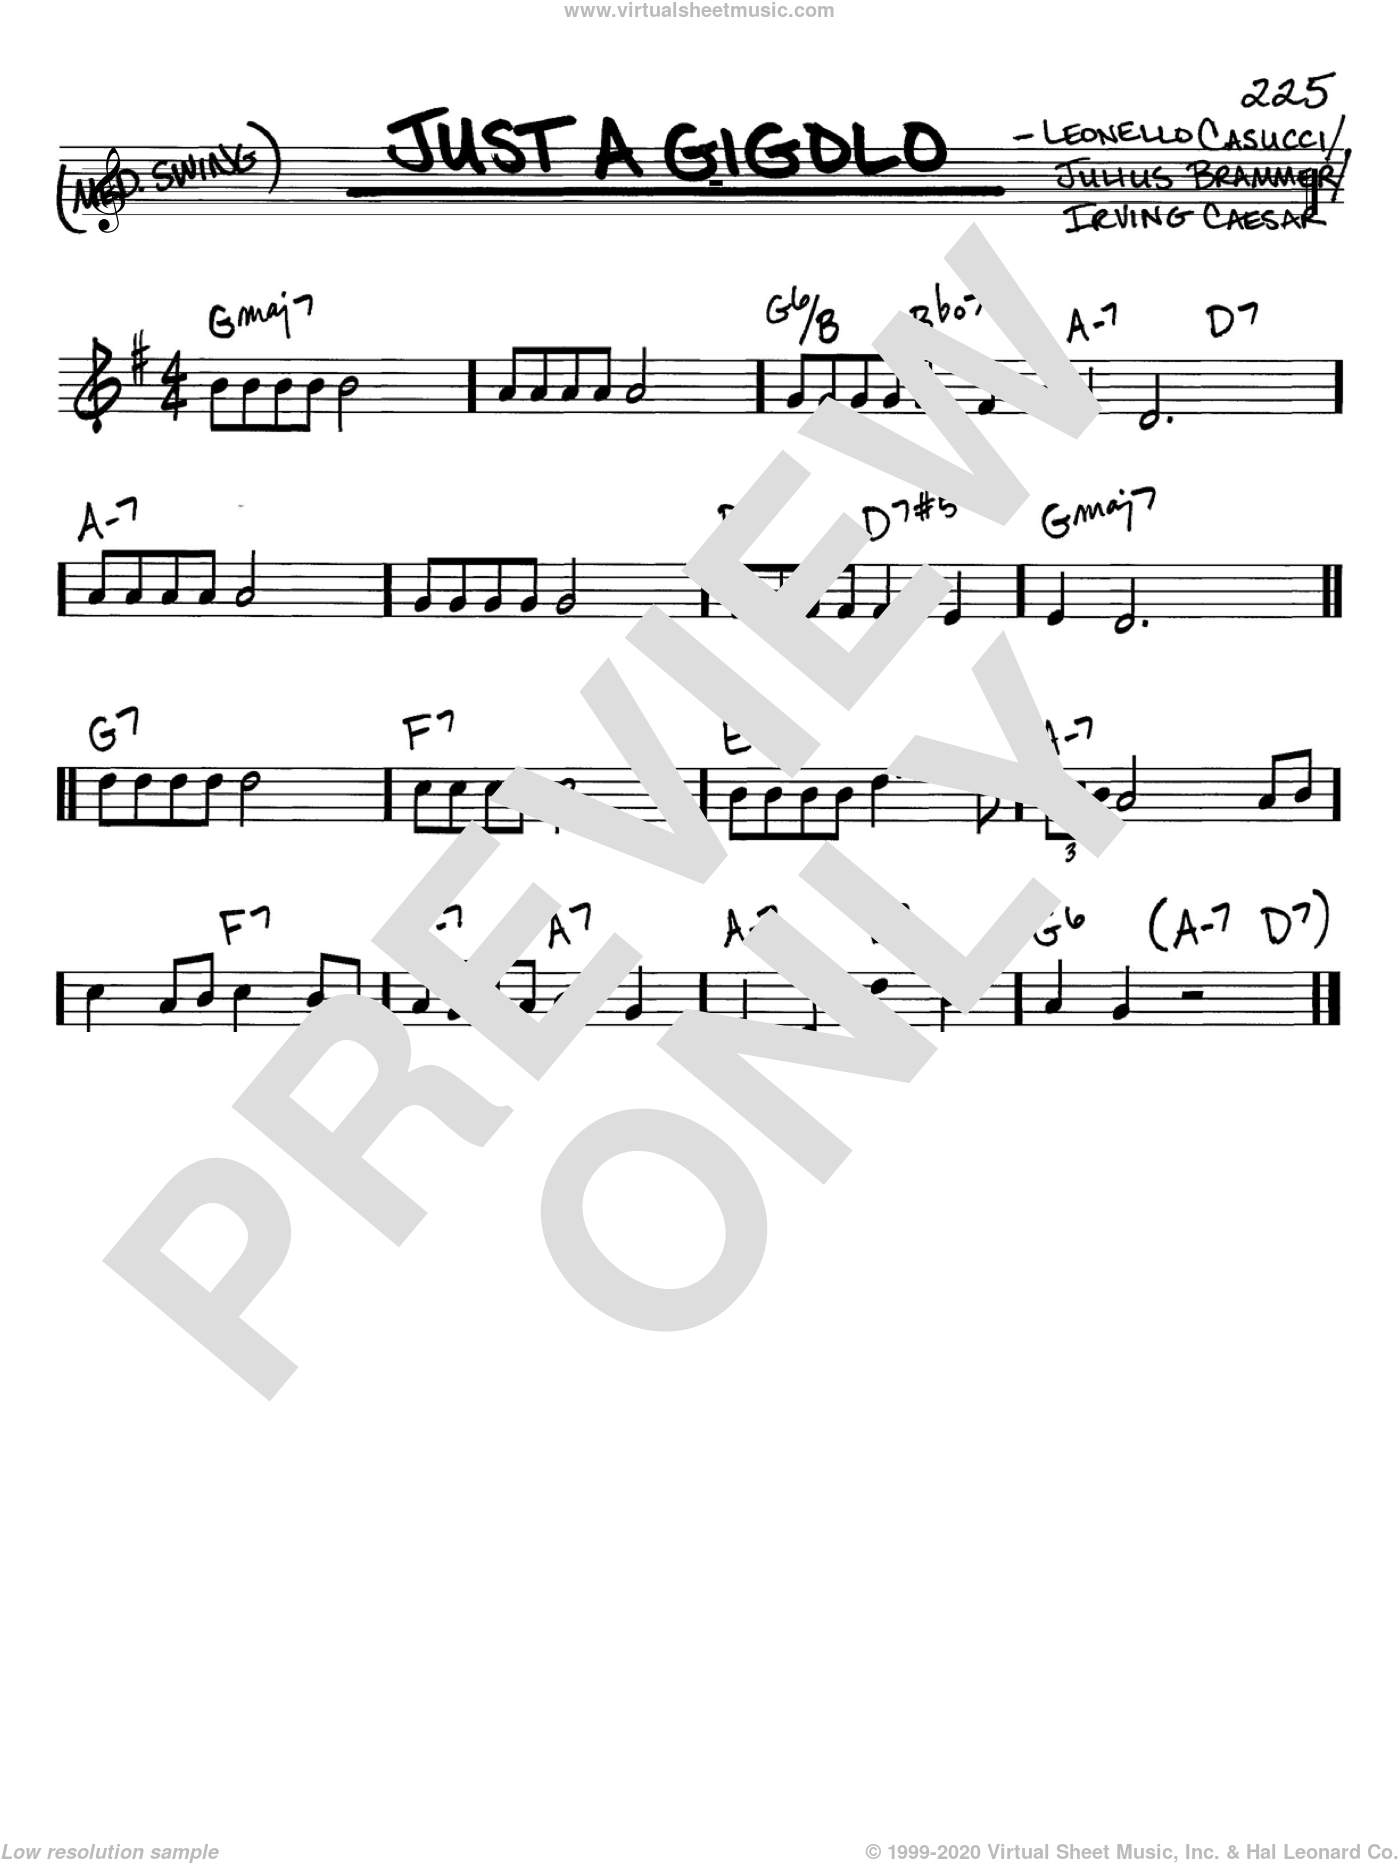 Just A Gigolo sheet music for voice and other instruments (C) by Leonello Casucci, Louis Armstrong and Irving Caesar. Score Image Preview.